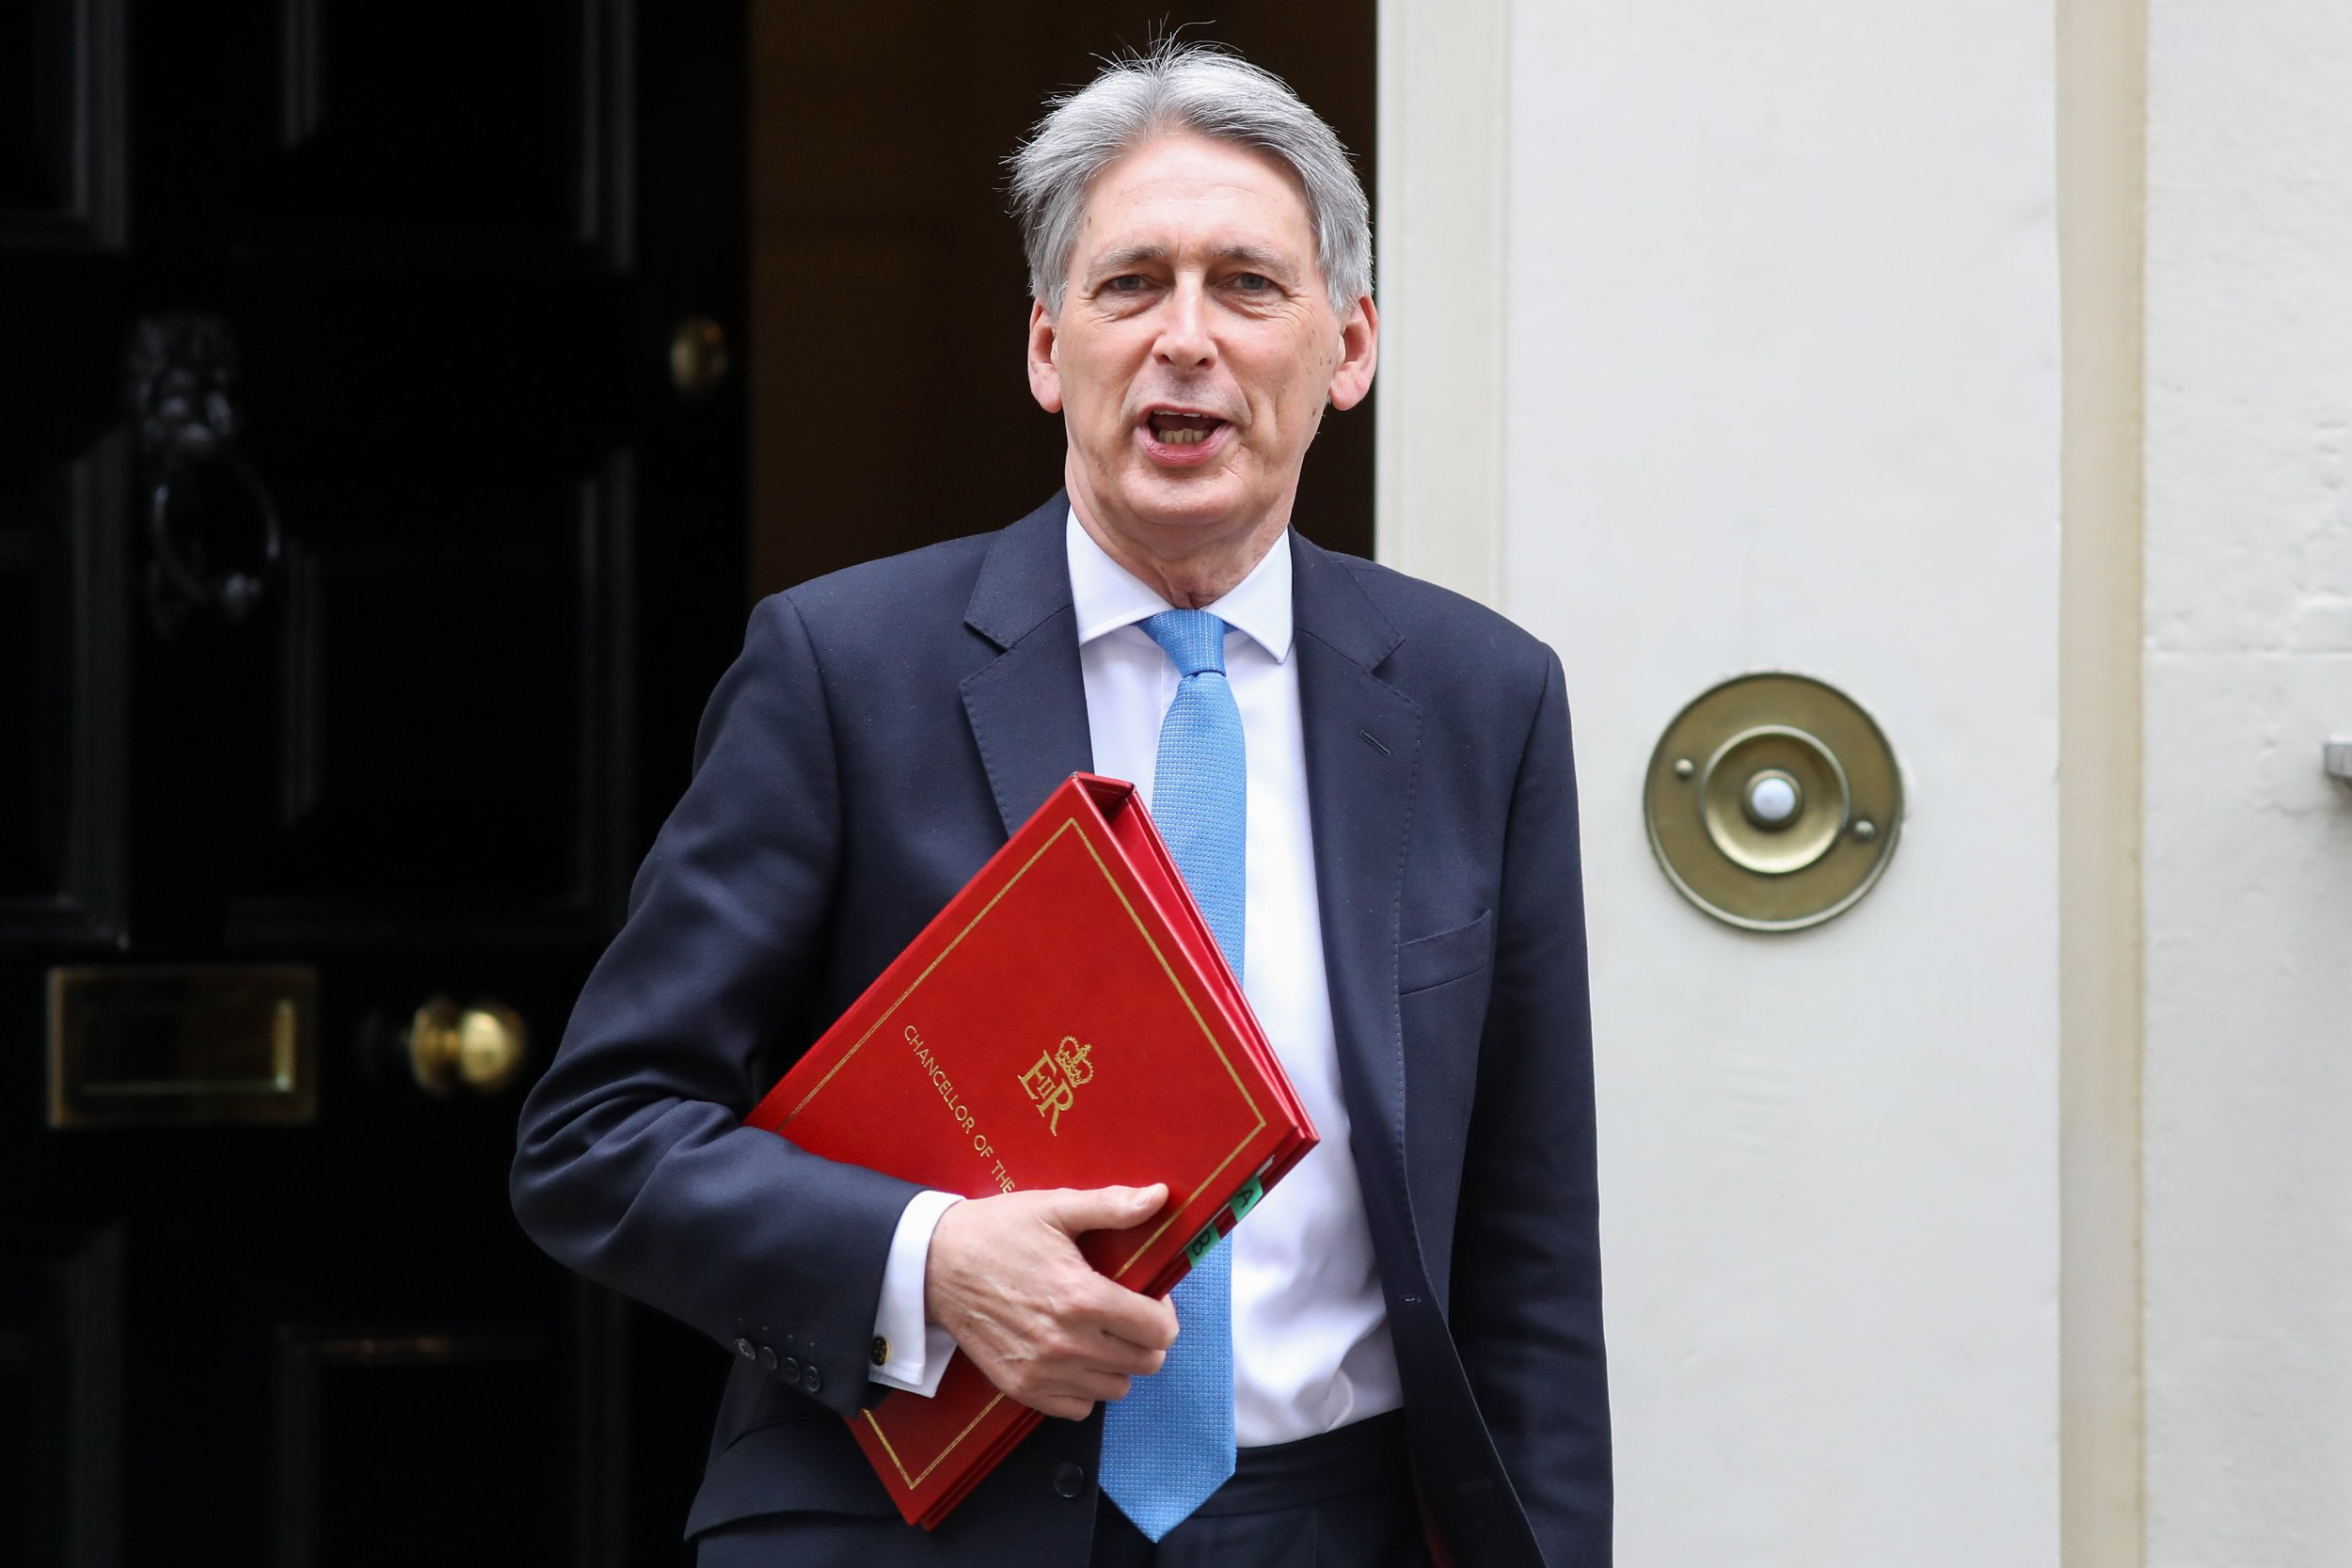 Philip Hammond, U.K. chancellor of the exchequer, leaves number 11 Downing Street to present the Spring Statement in Parliament in London, U.K., on Tuesday, March 13, 2018. This year 'Hammond'?has decided to do things differently, moving the main Budget announcement to the Autumn and reducing the Spring Statement one to a handful of forecasts on the shape of the economy that will last less than half an hour. Photographer: Simon Dawson/Bloomberg via Getty Images